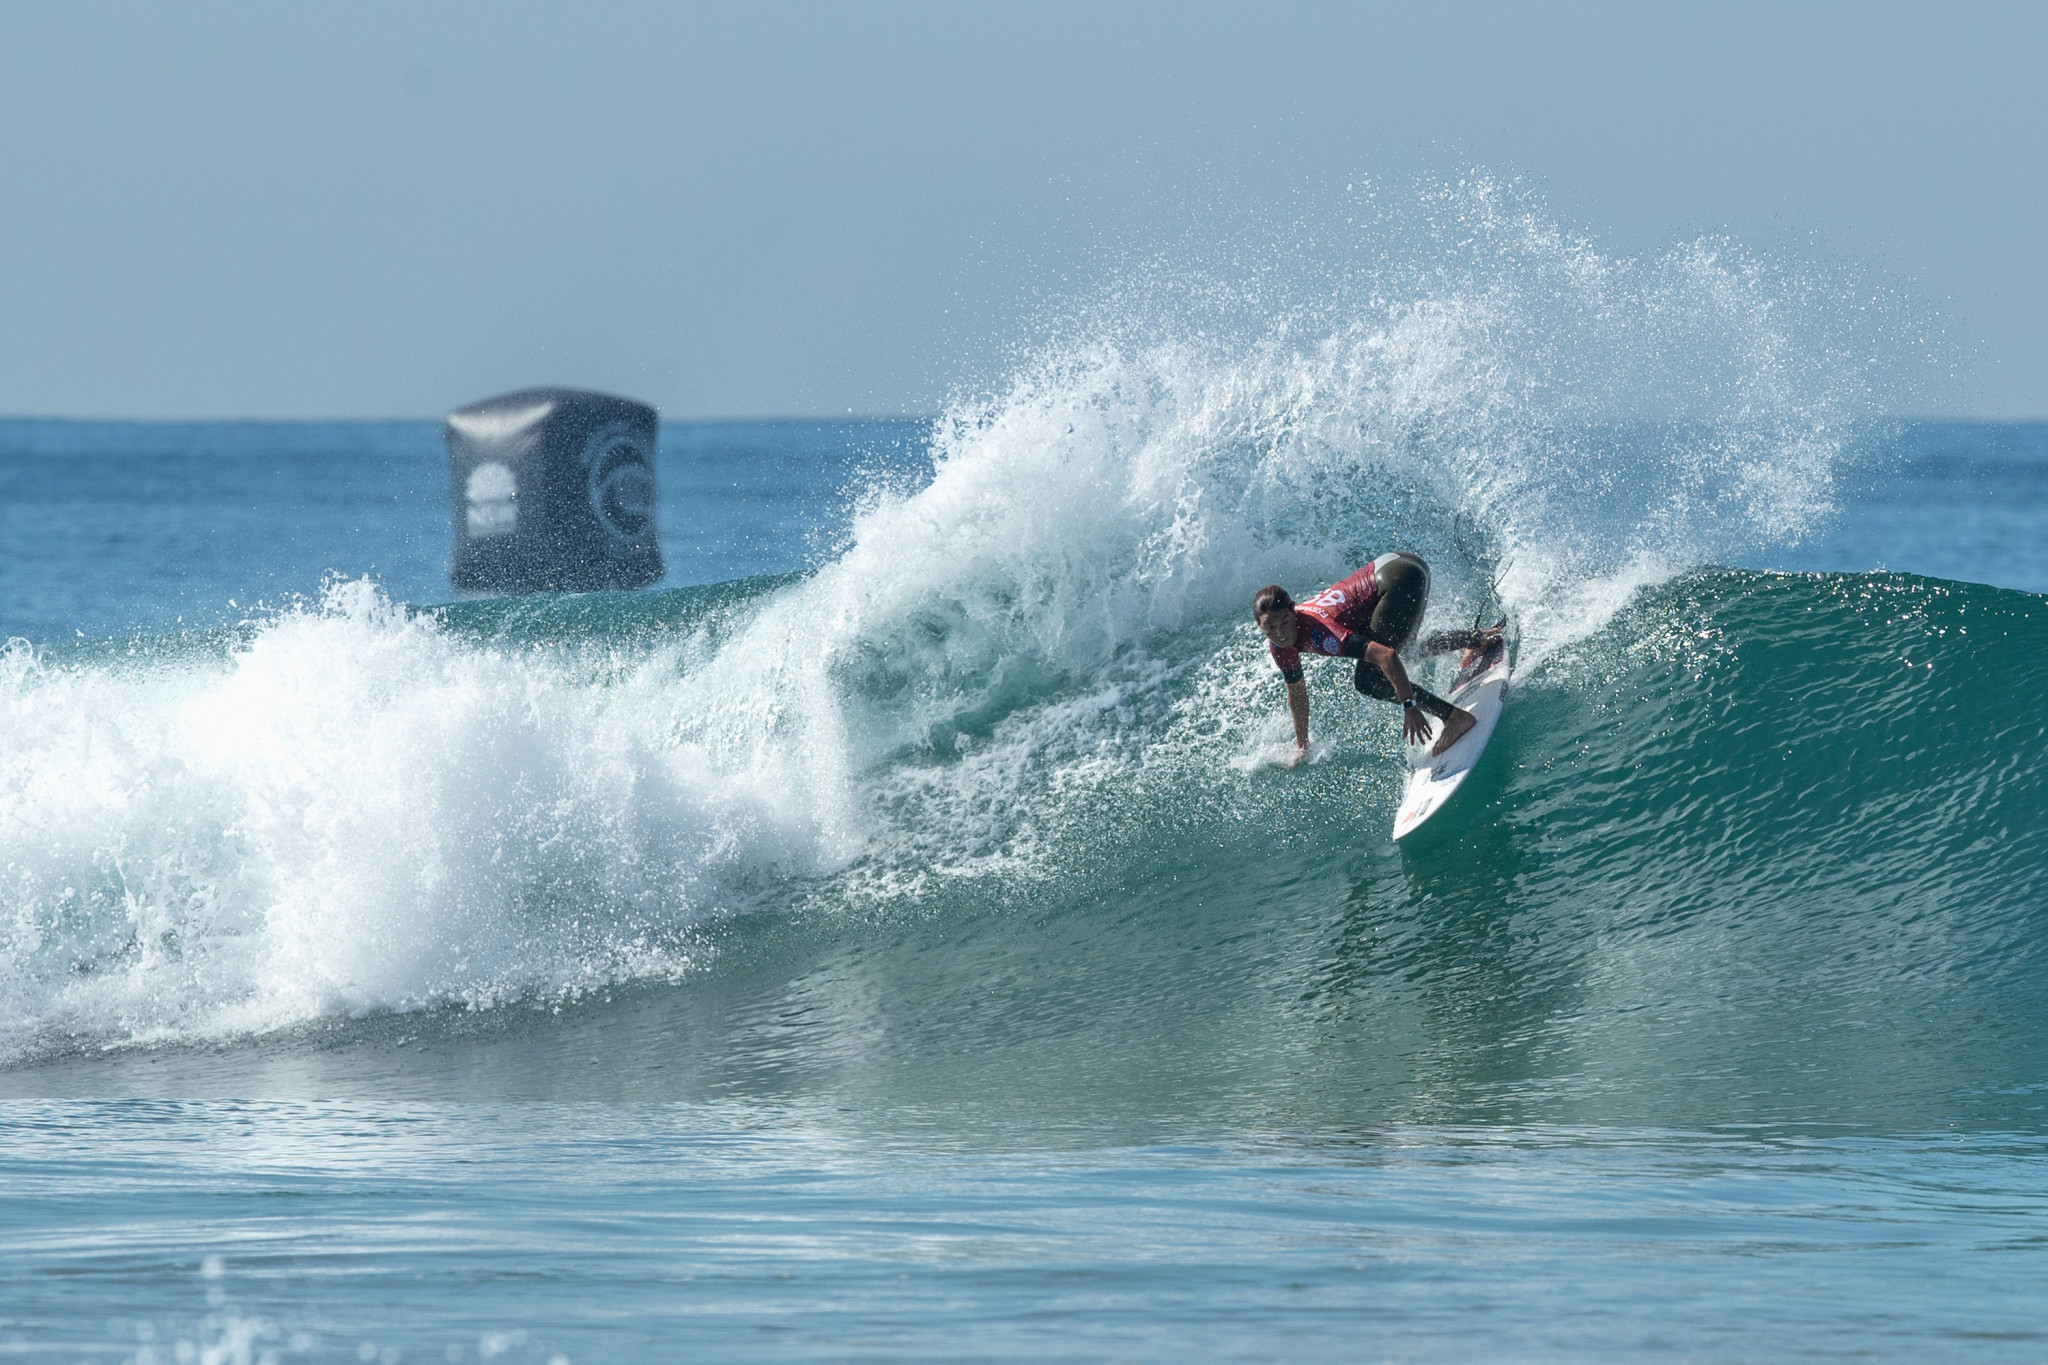 Medina and Fitzgibbons victorious at World Surf League leg on Rottnest Island